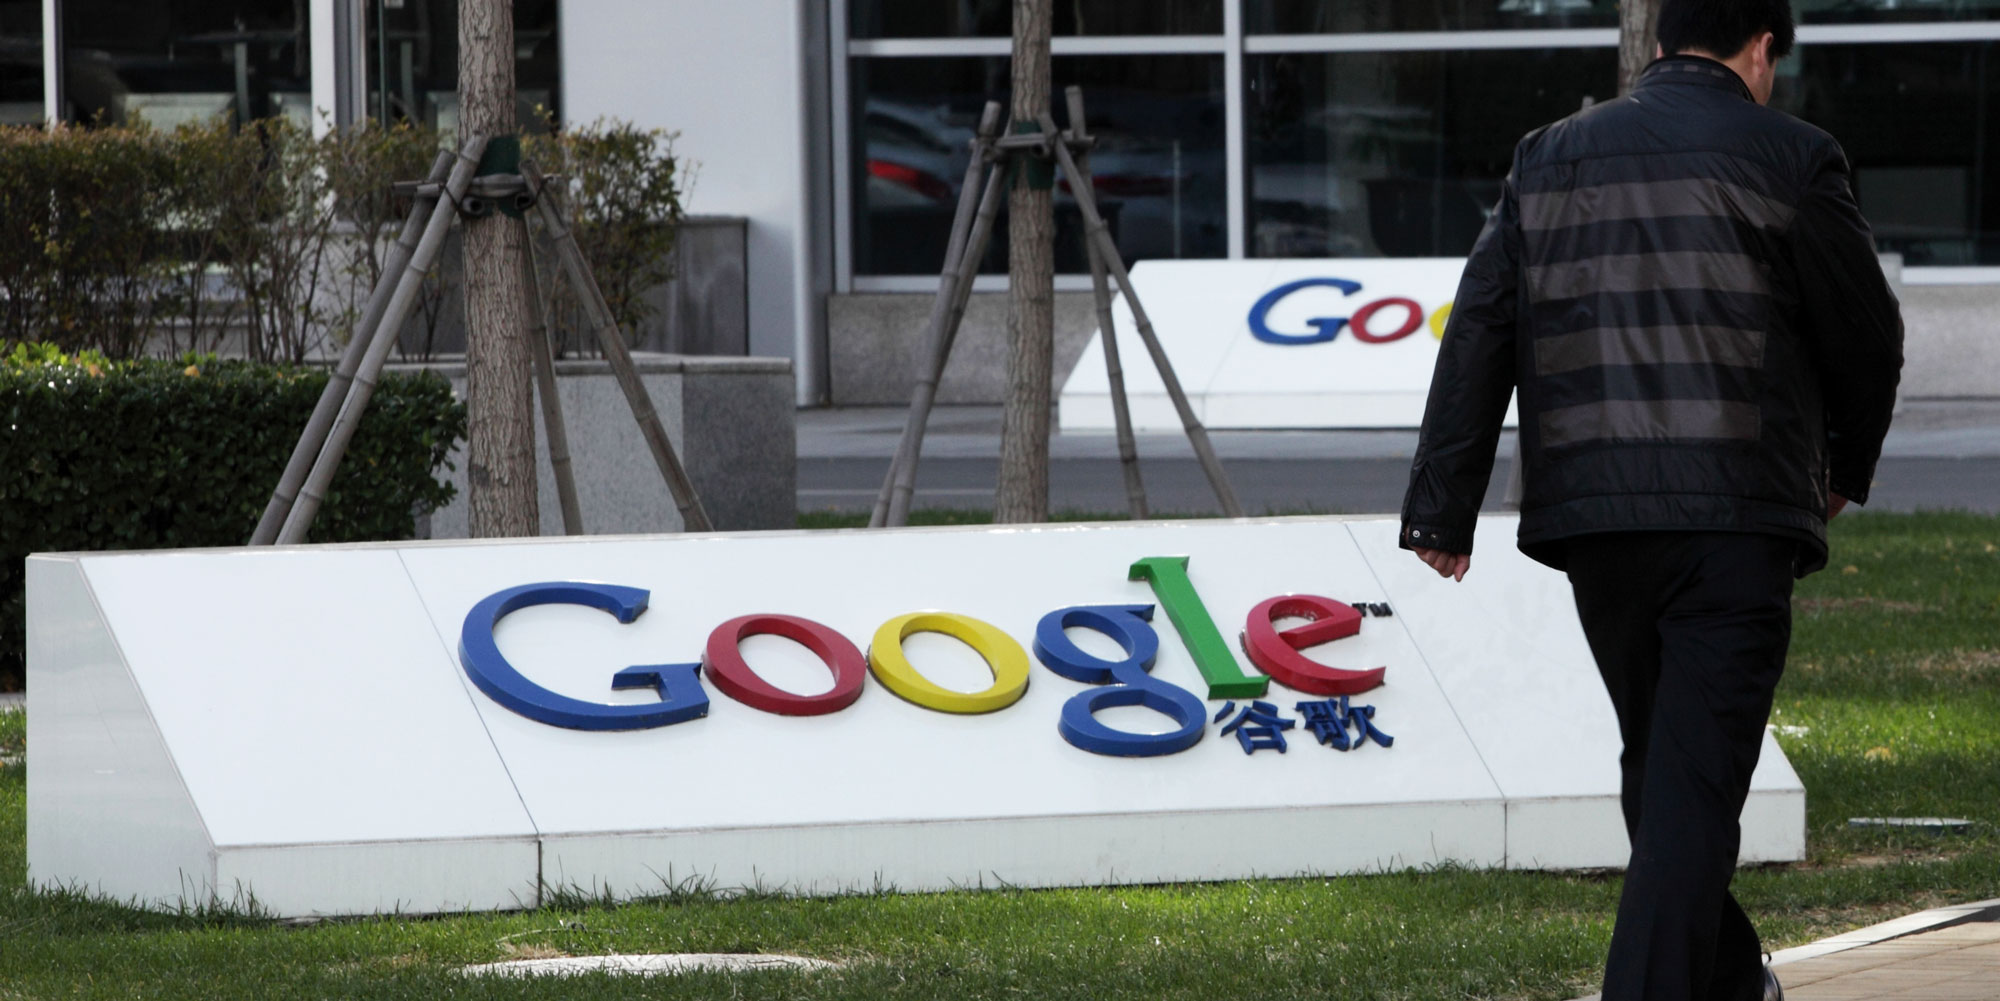 Google is still going to launch a search service censored in China